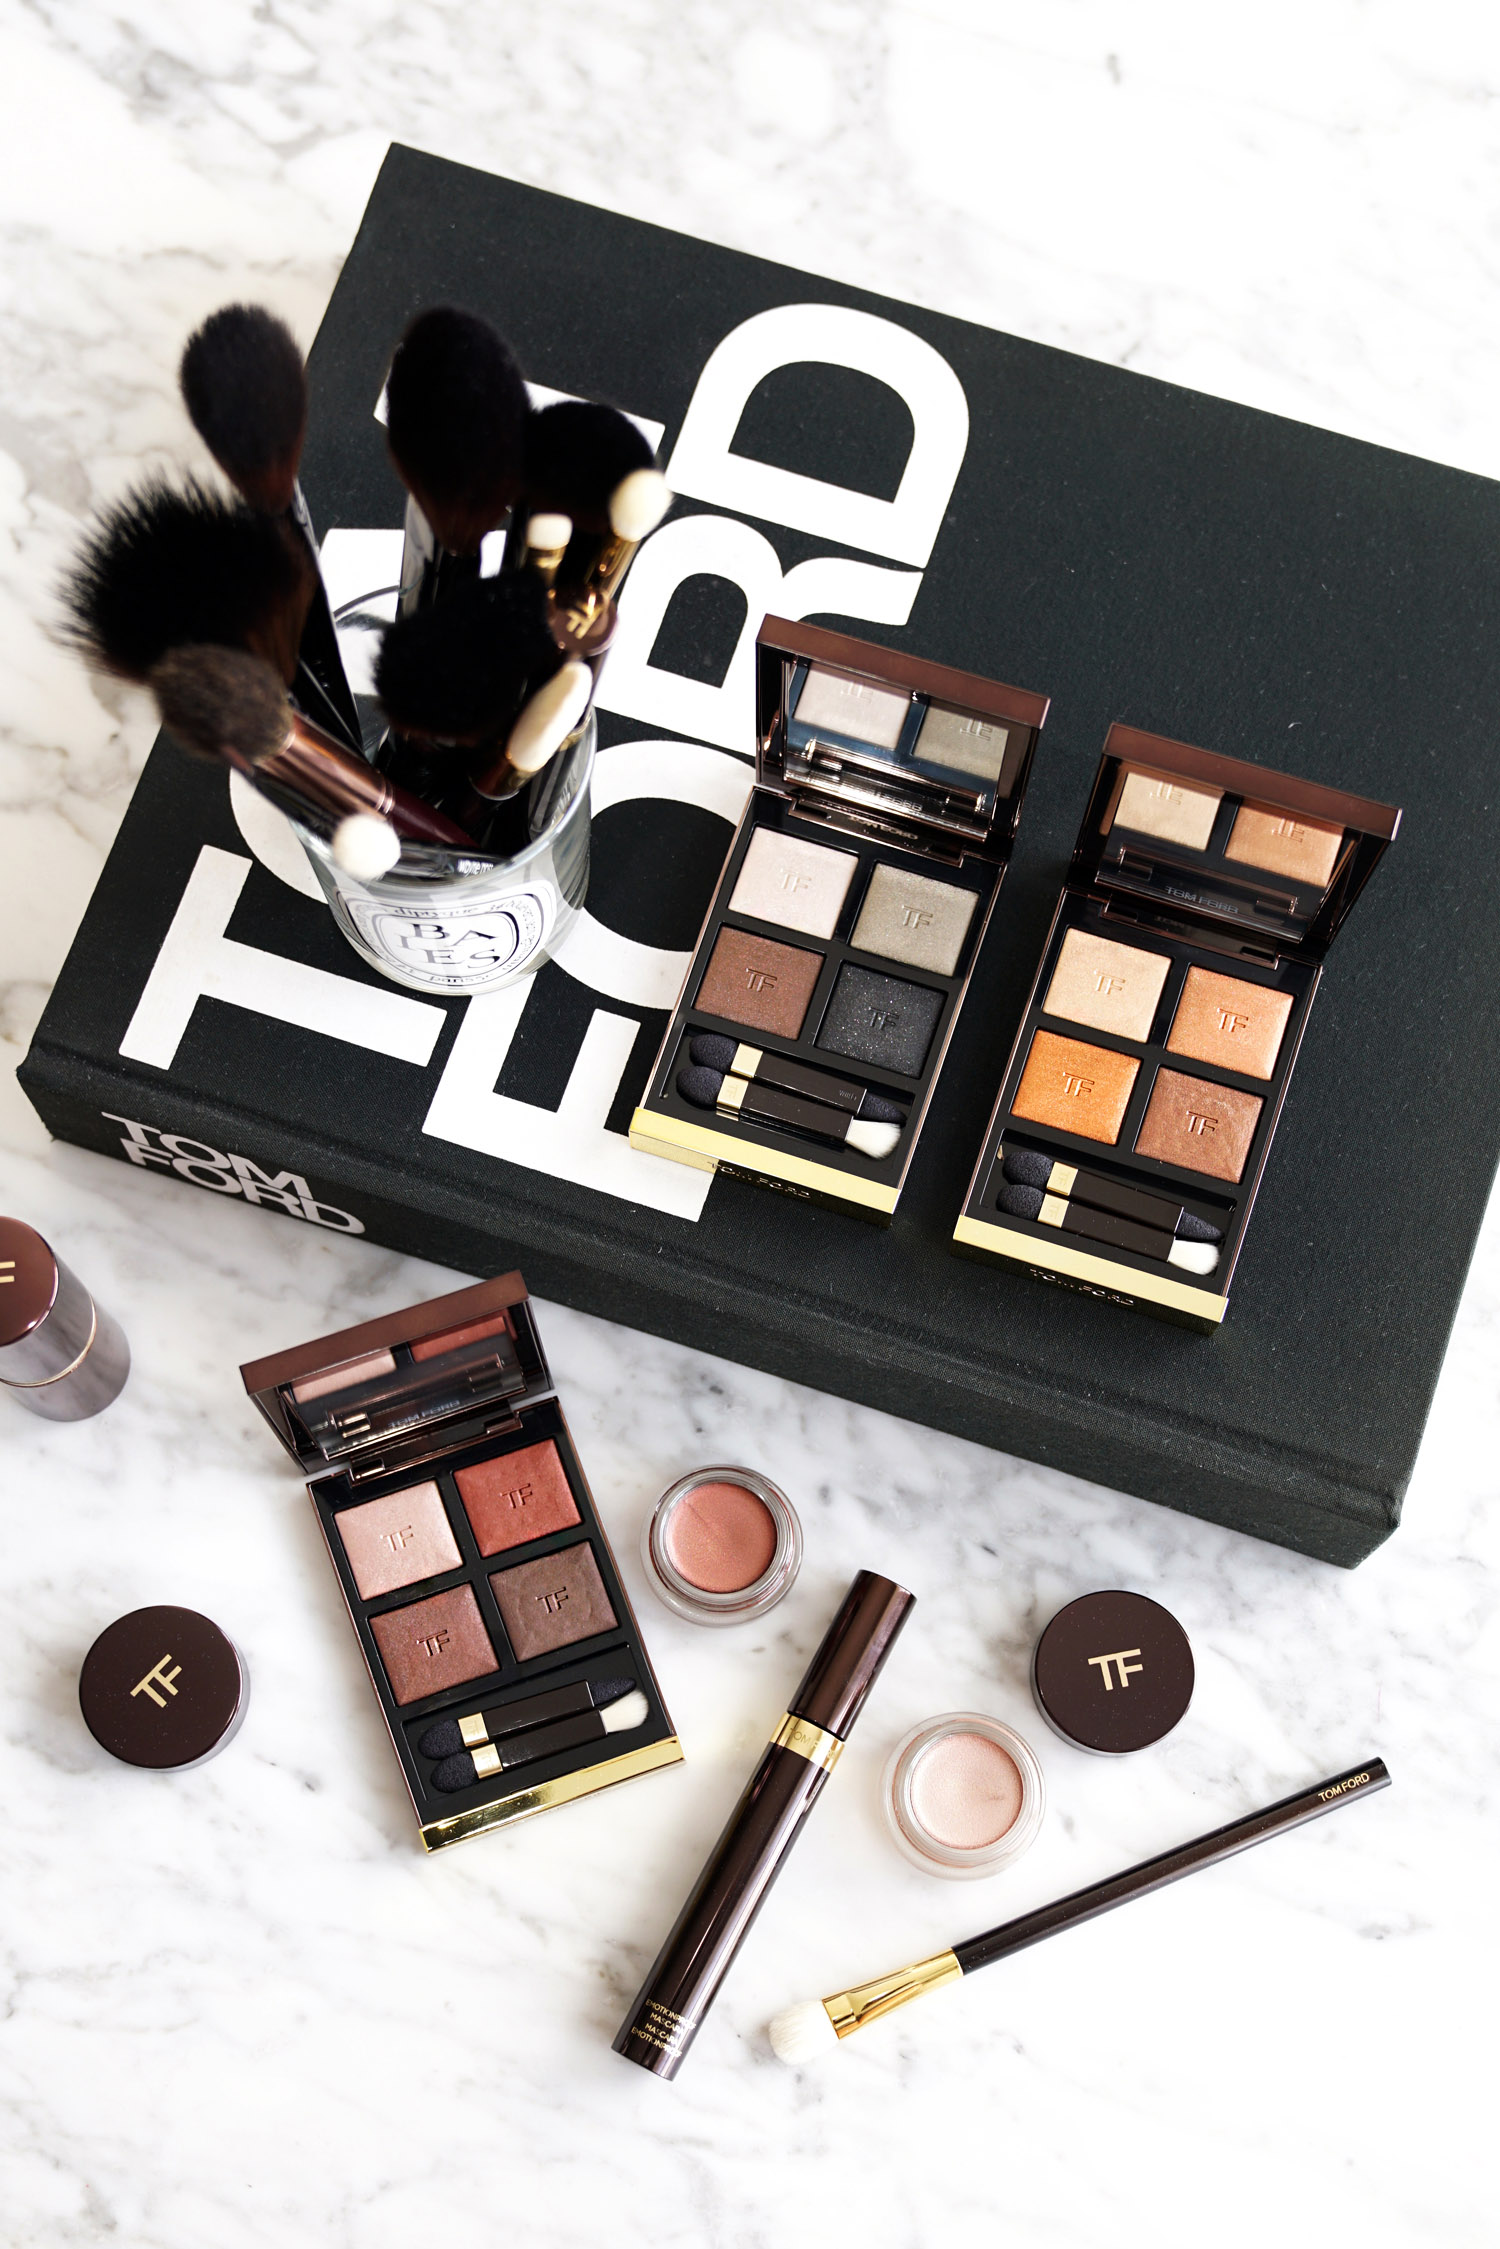 Tom Ford Body Heat : Color, Quads, Heat,, Double, Indemnity,, Suspicion, Emotionproof, Picks, Beauty